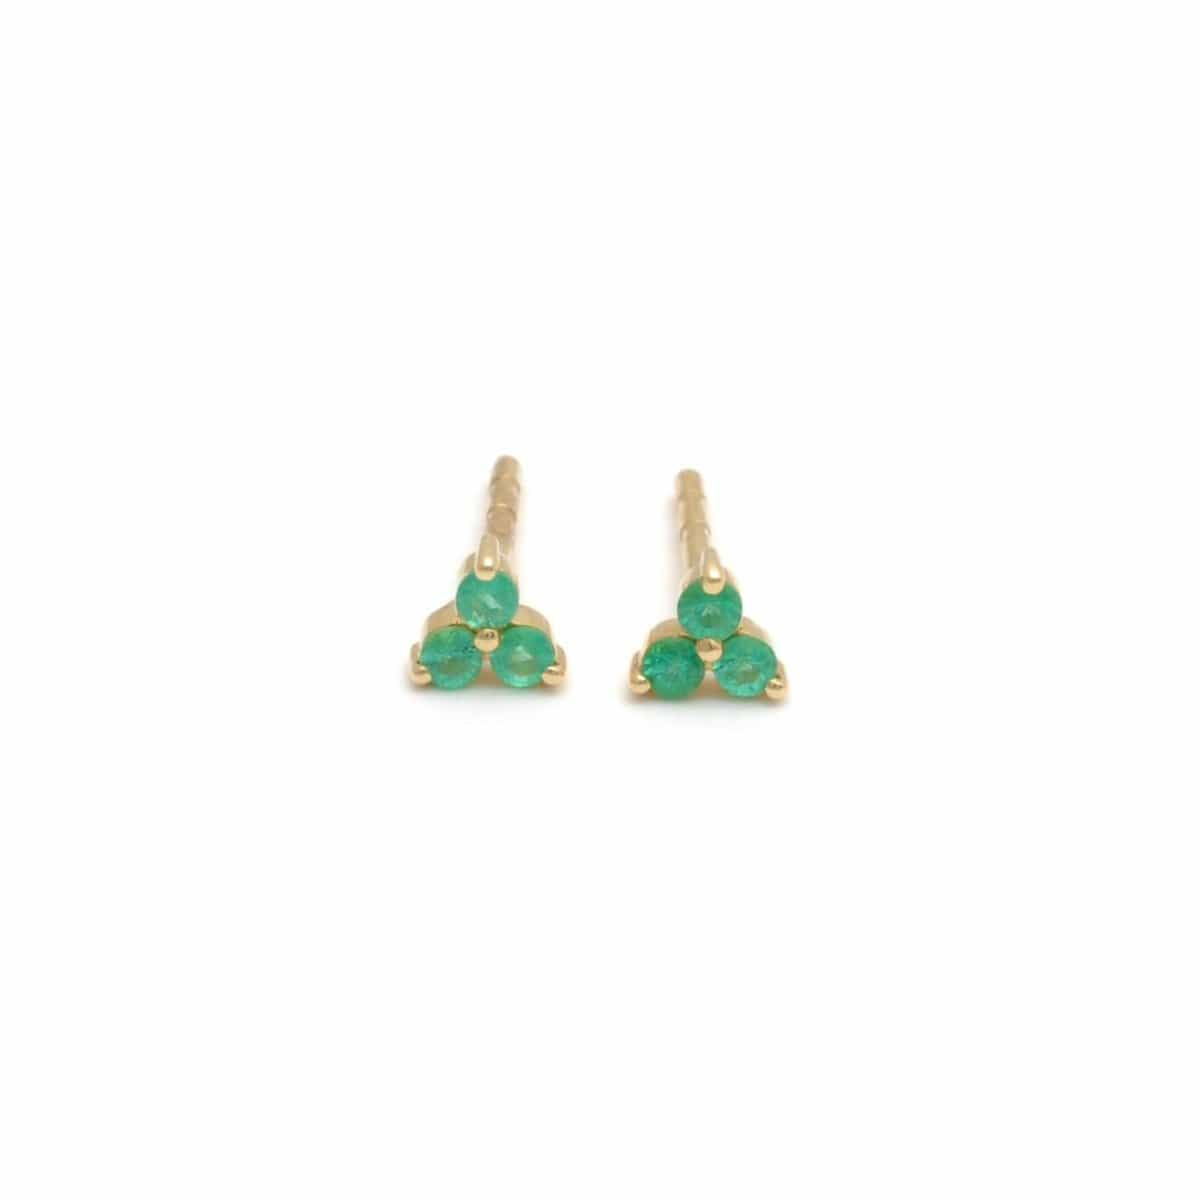 Three Emerald cluster earrings